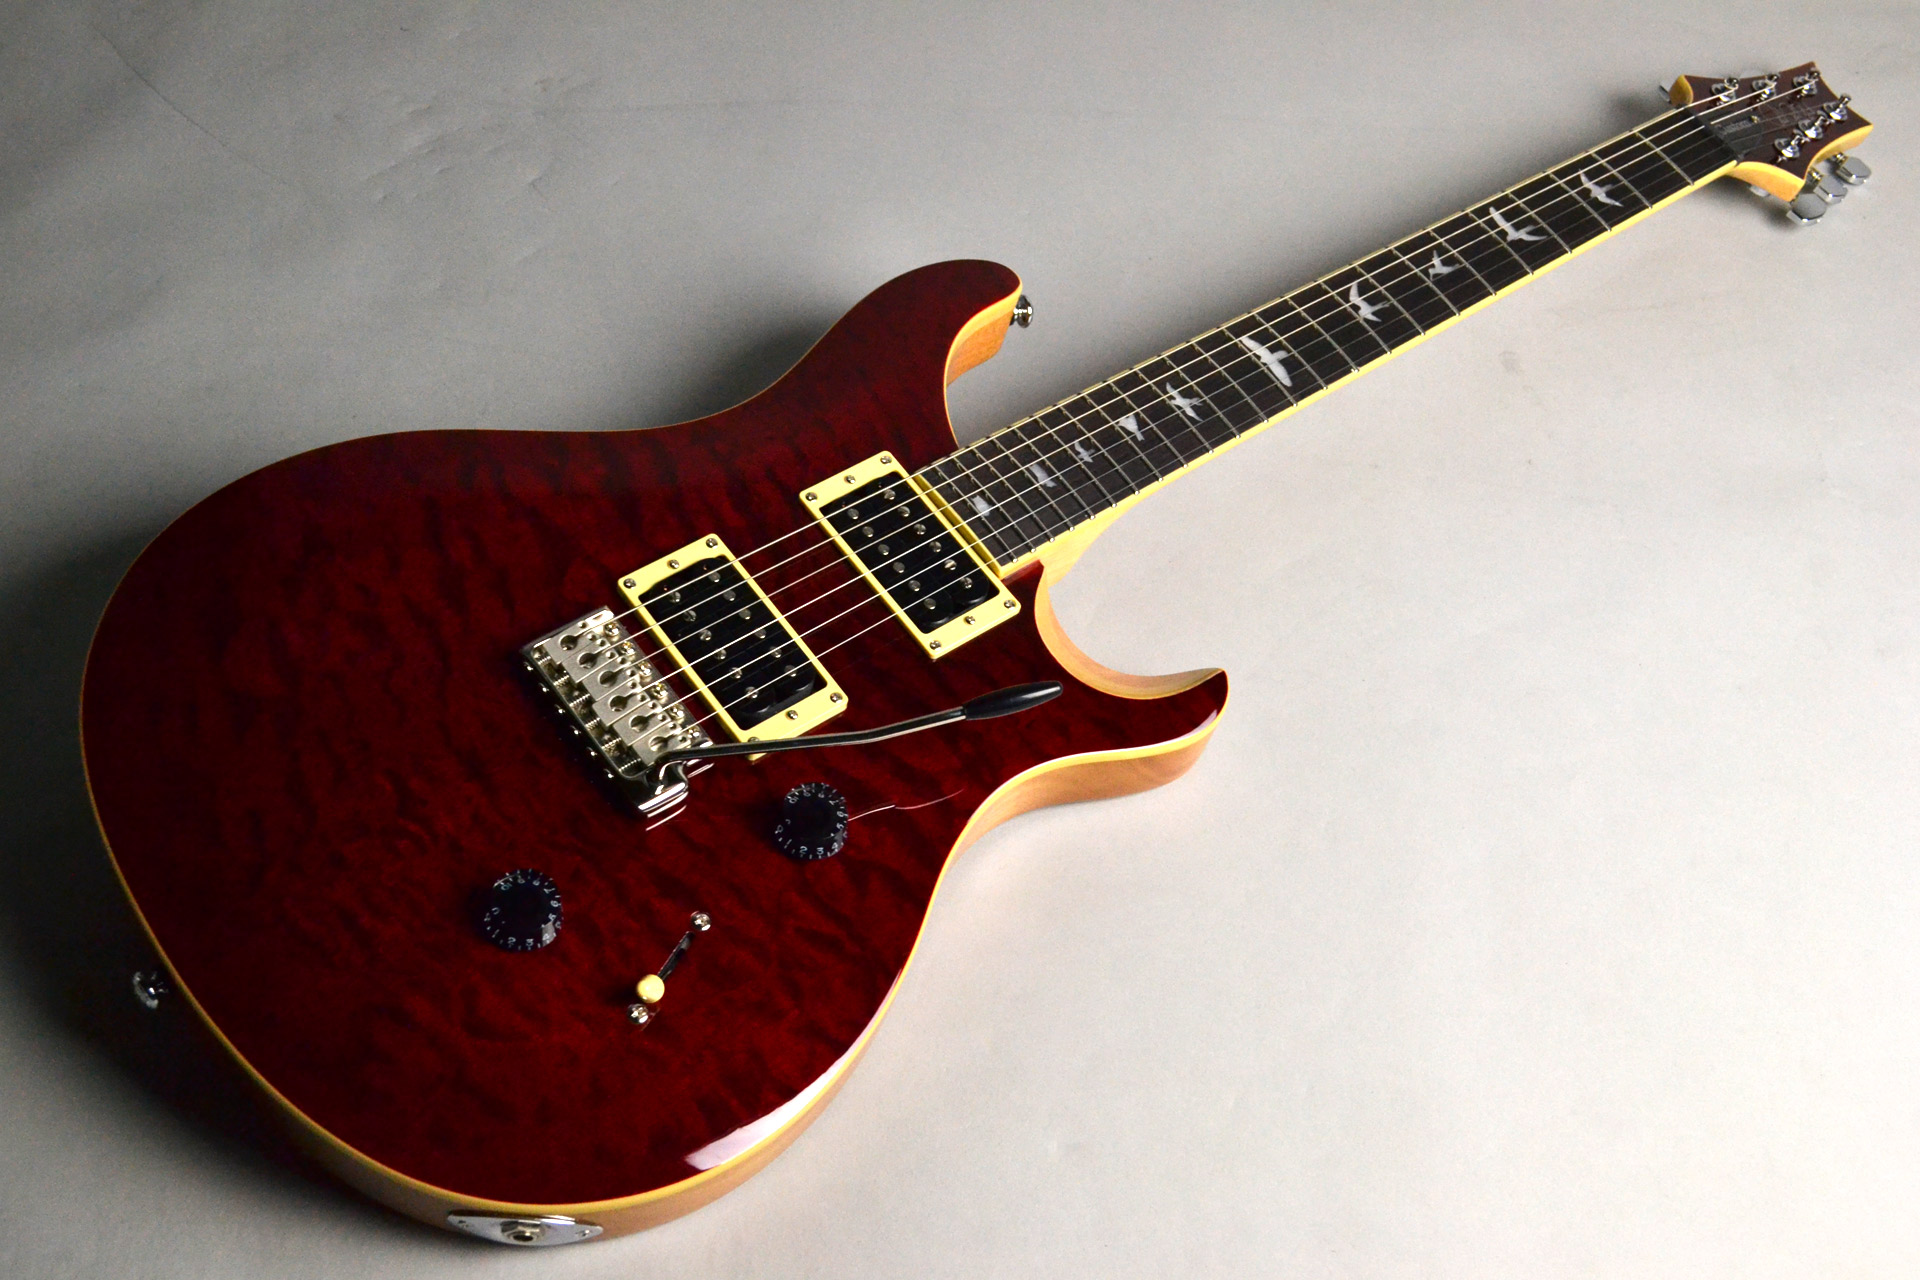 SE Custom 24 QM LTD Black Cherry【島村楽器モデル】